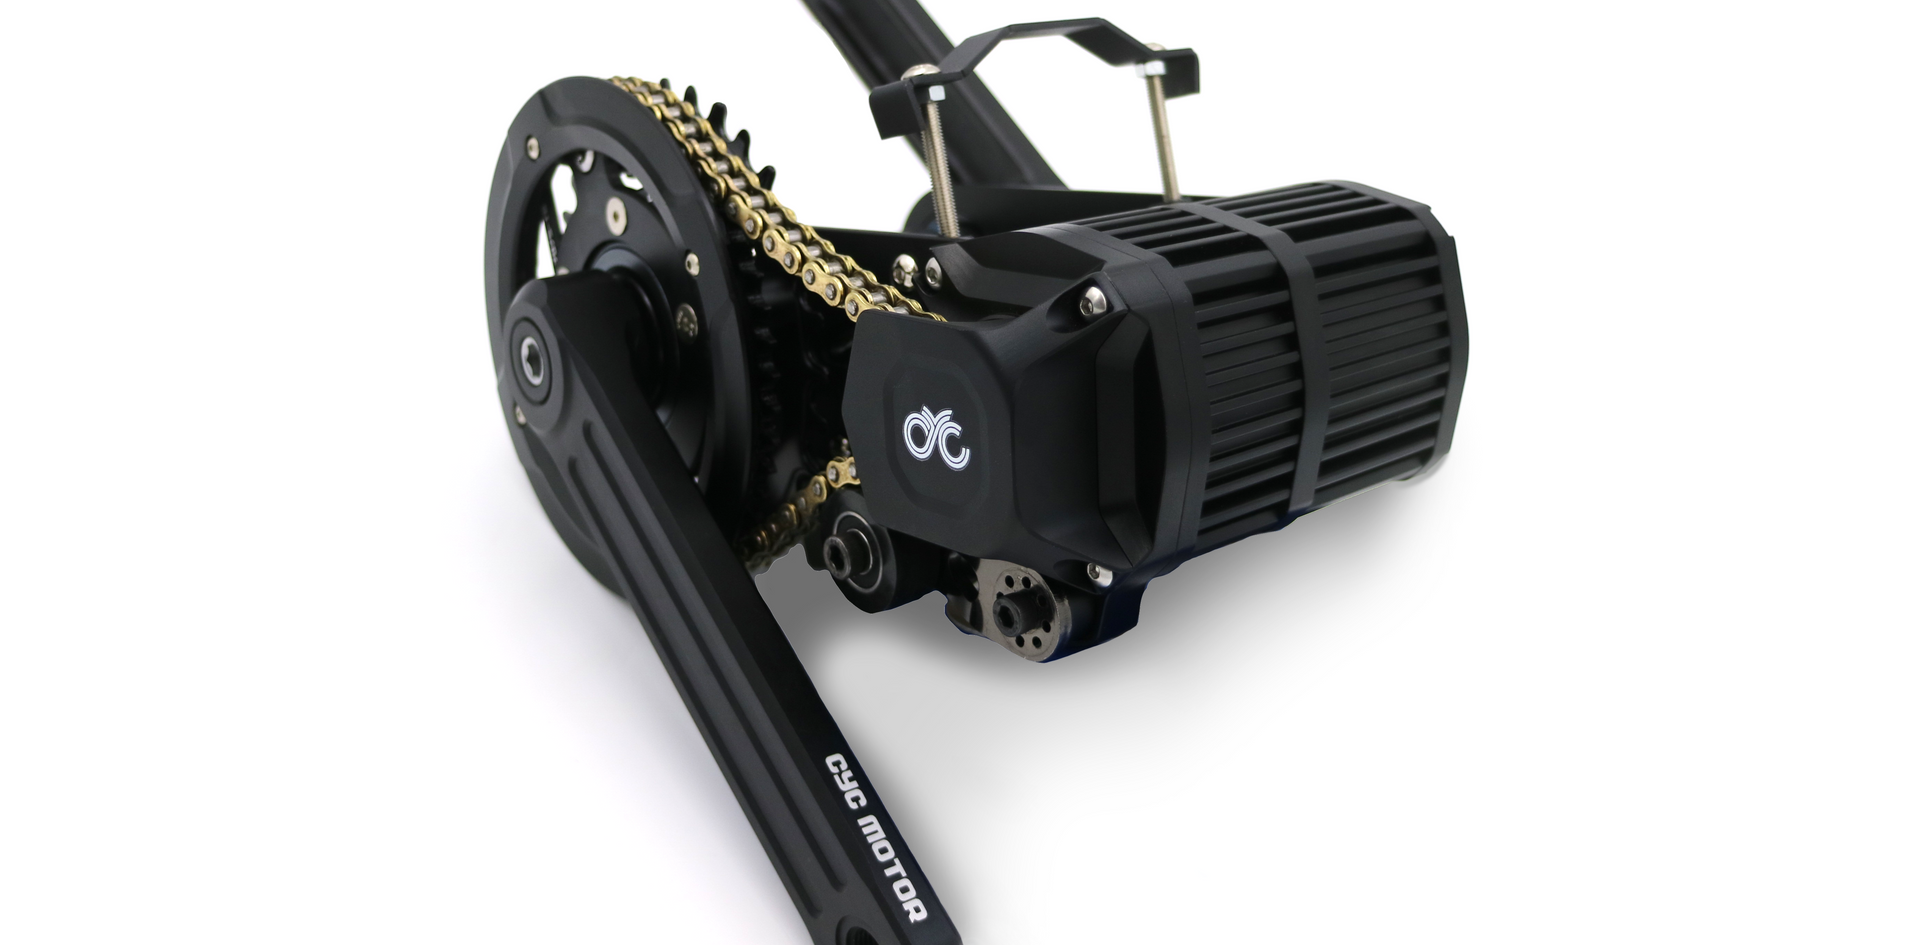 X1 Stealth mid drive motor side view